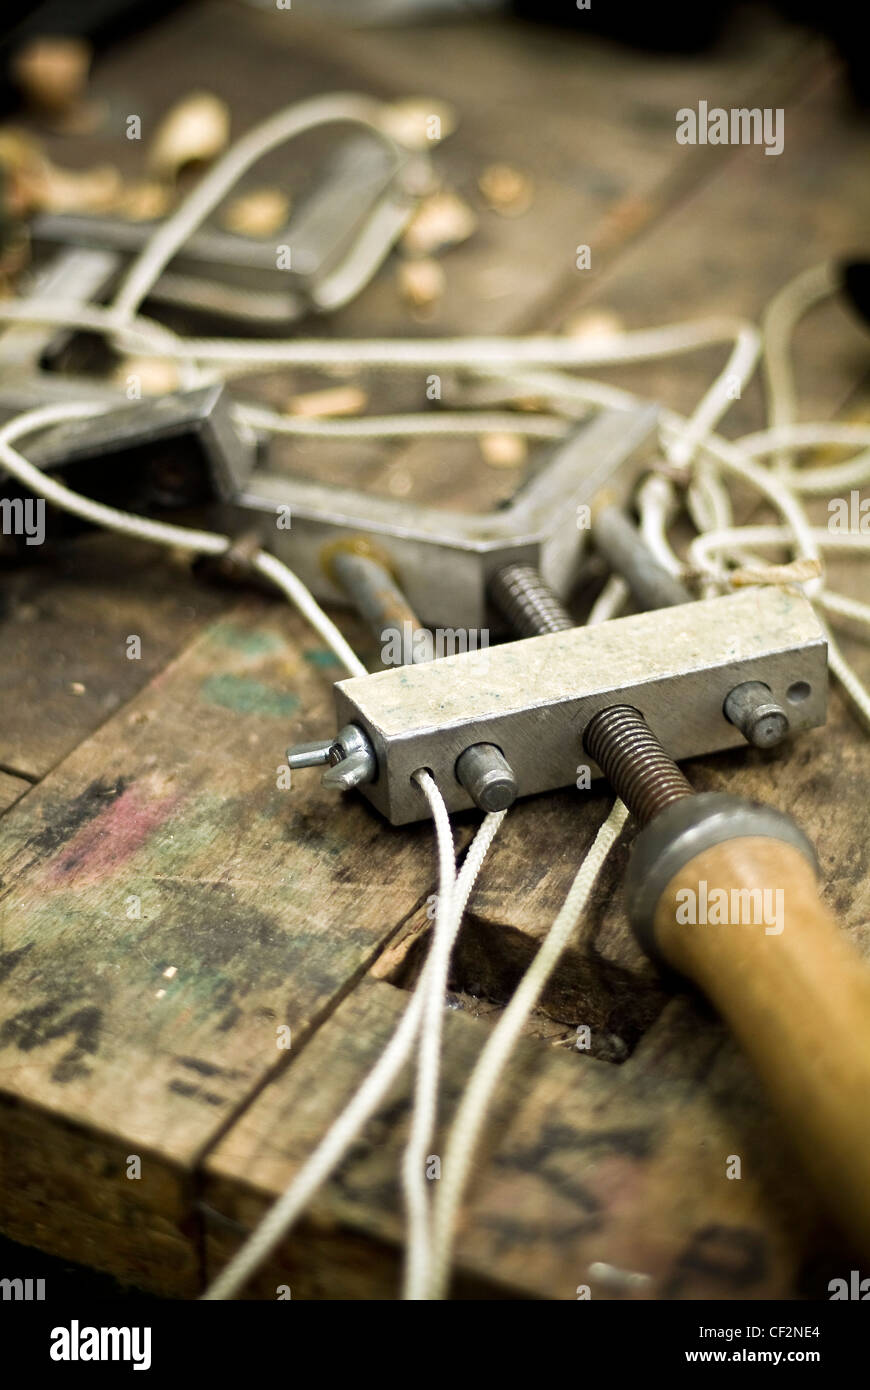 Picture framing tools on a work bench Stock Photo: 43701340 - Alamy